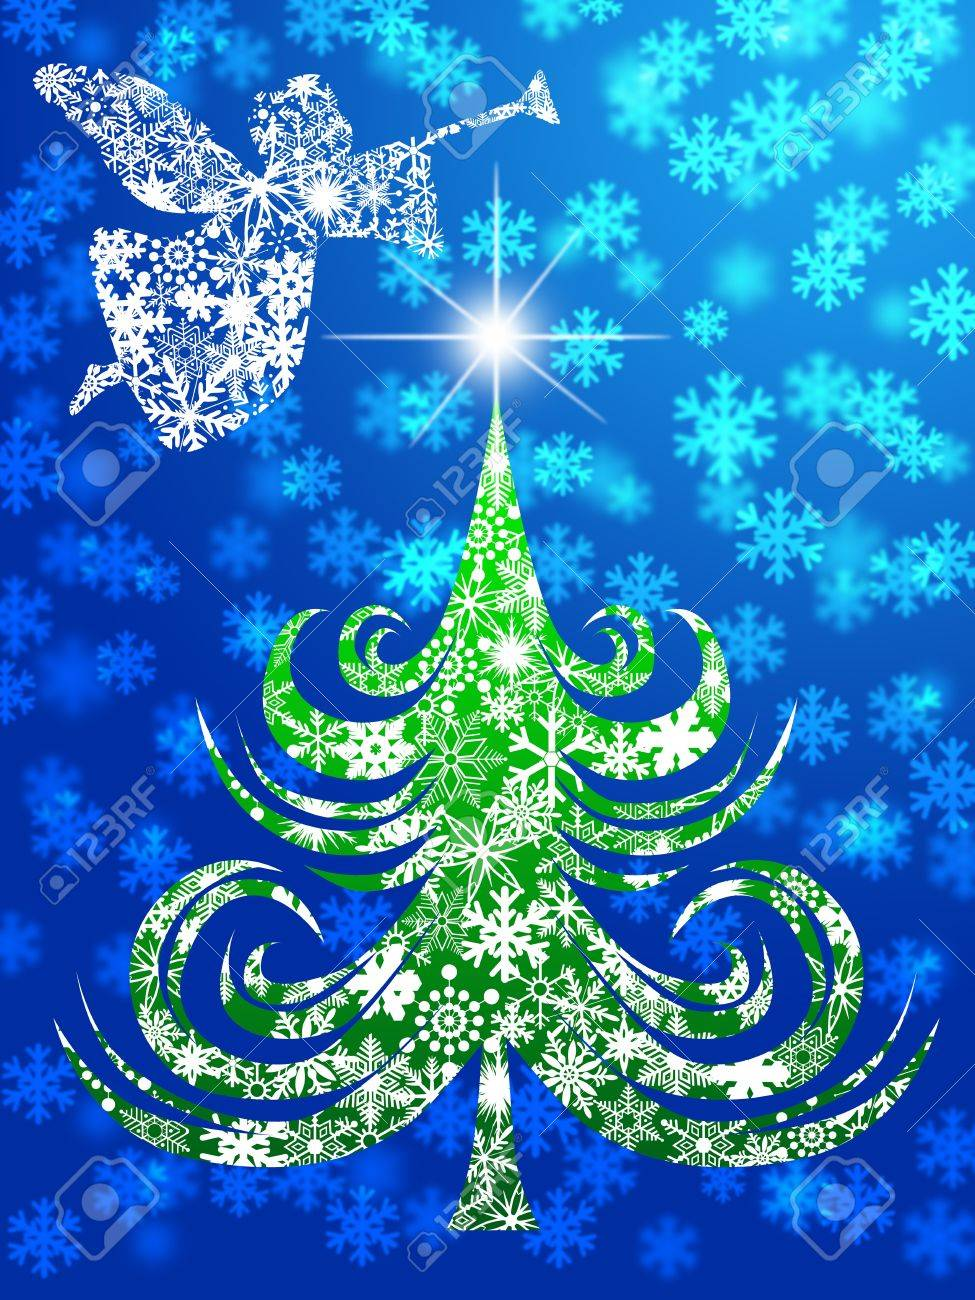 Snowflakes Angel with Trumpet Over Christmas Tree Illustration Stock Photo - 11266662